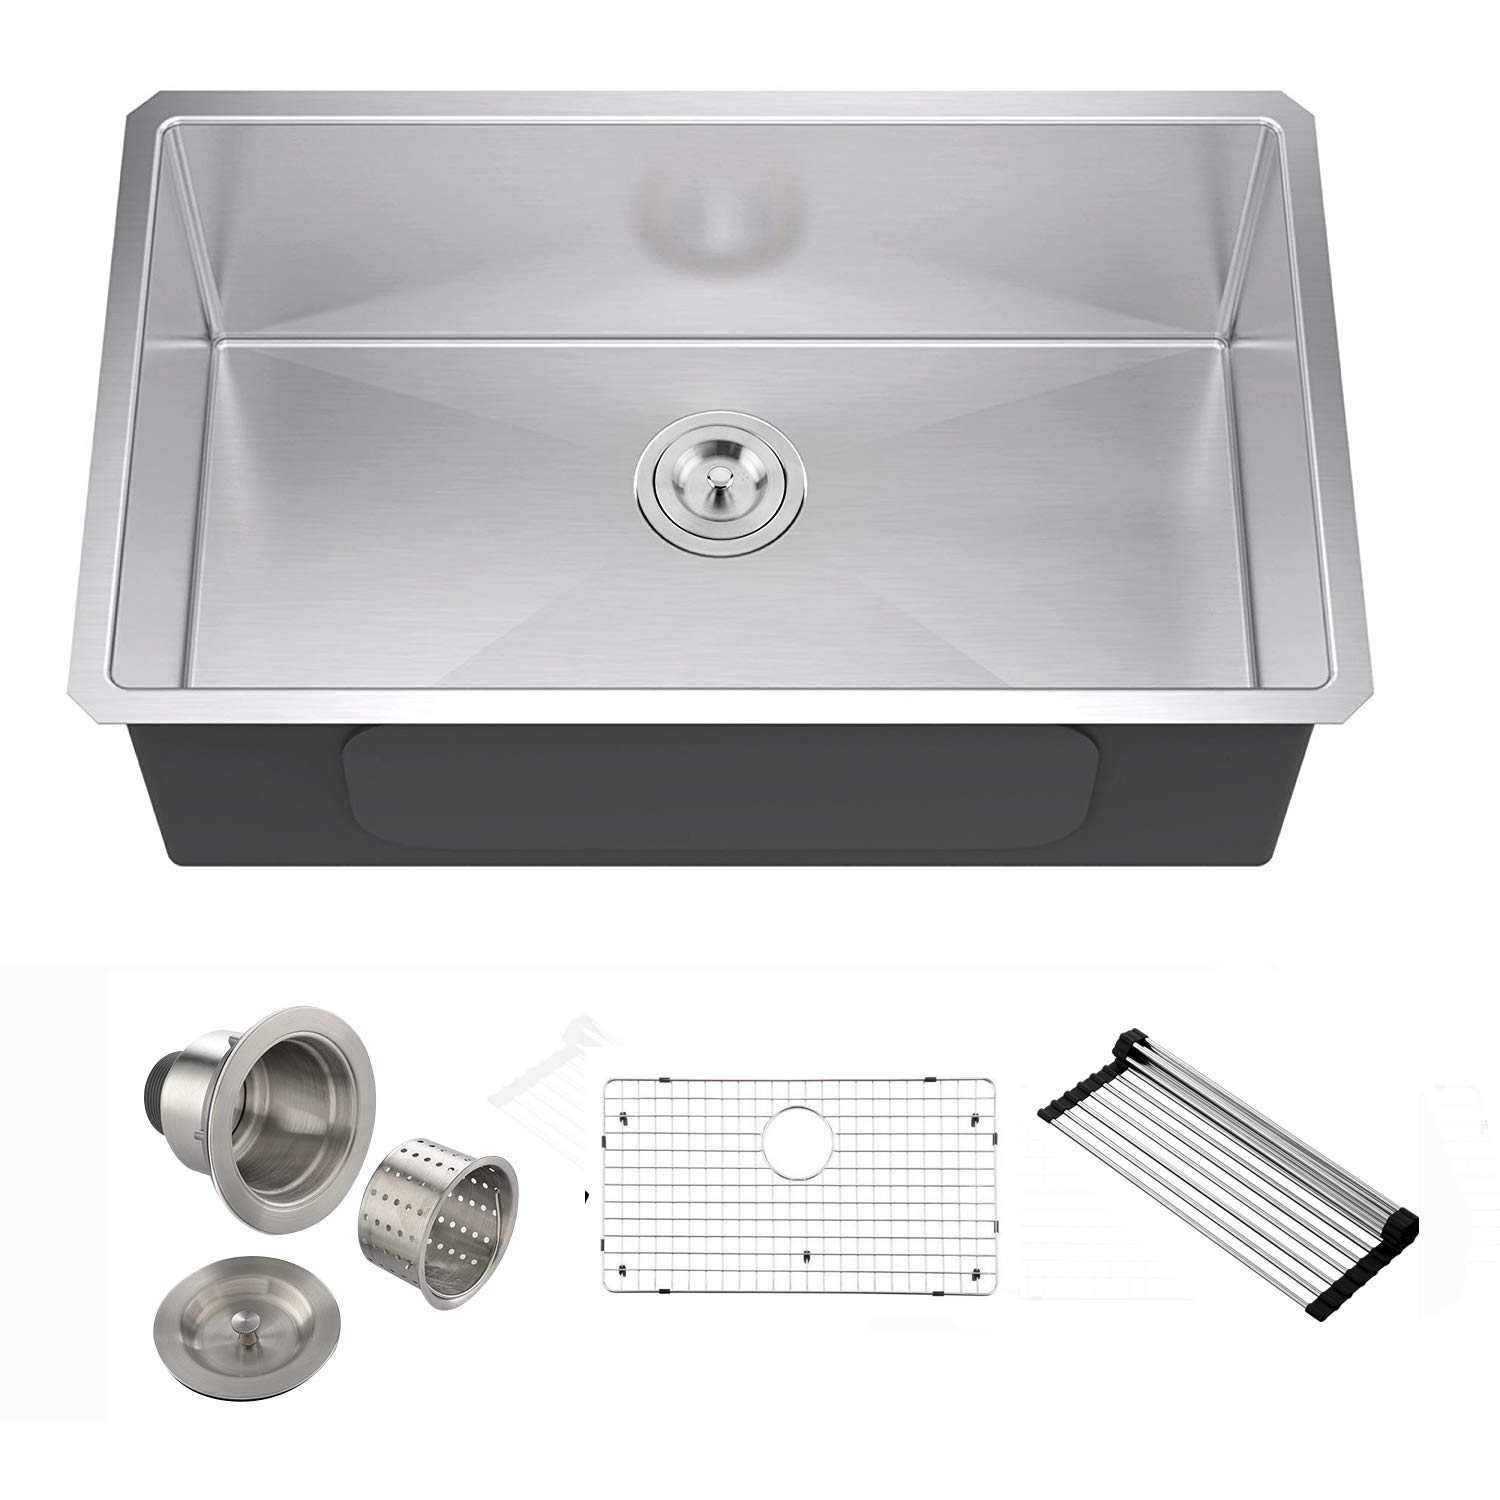 VESLA HOME 30-inch 18 Gauge Undermount Single Bowl 304 Stainless Steel Kitchen Sink, Undermount Sink with Drain